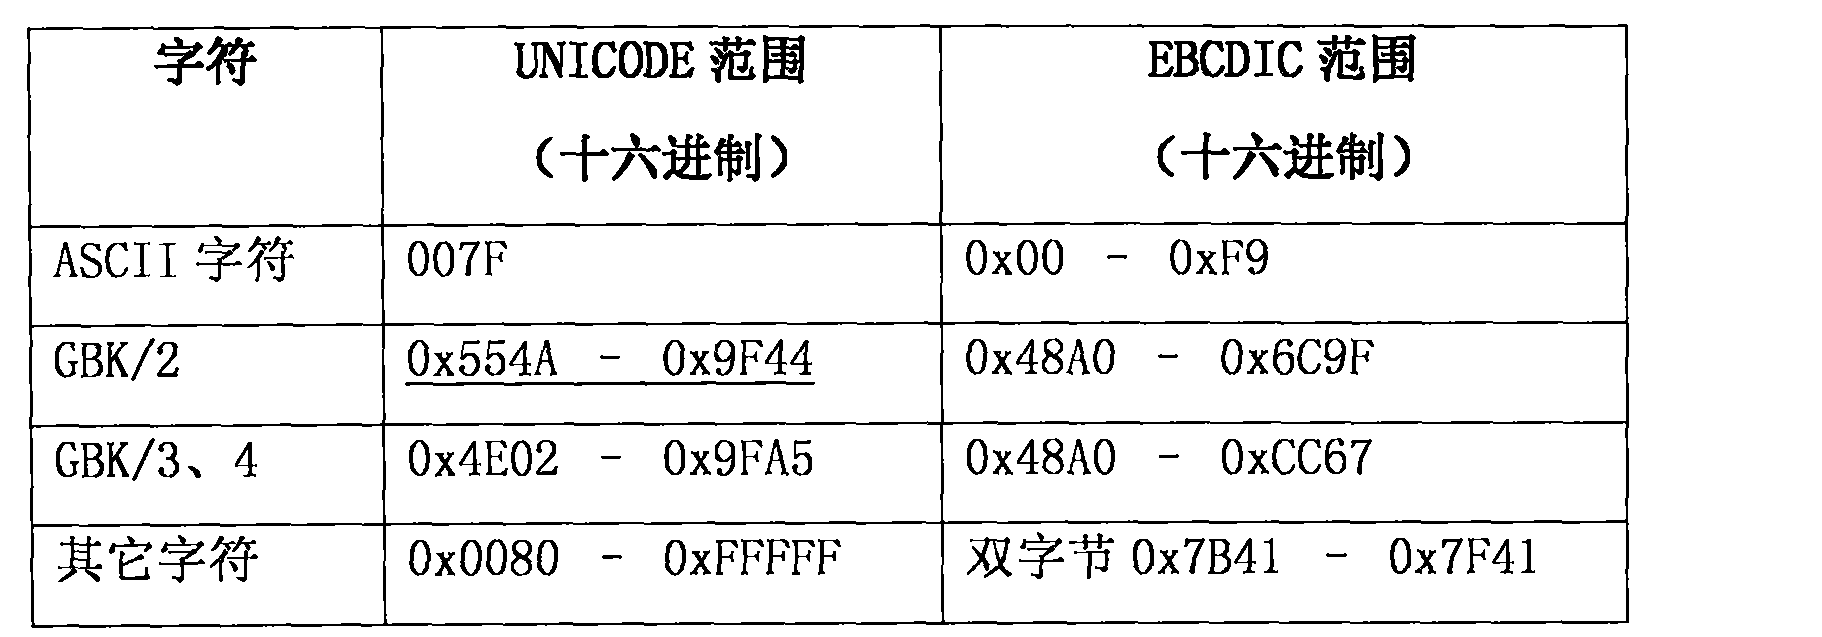 CN106484661A - EBCDIC (Extended Binary Coded Decimal